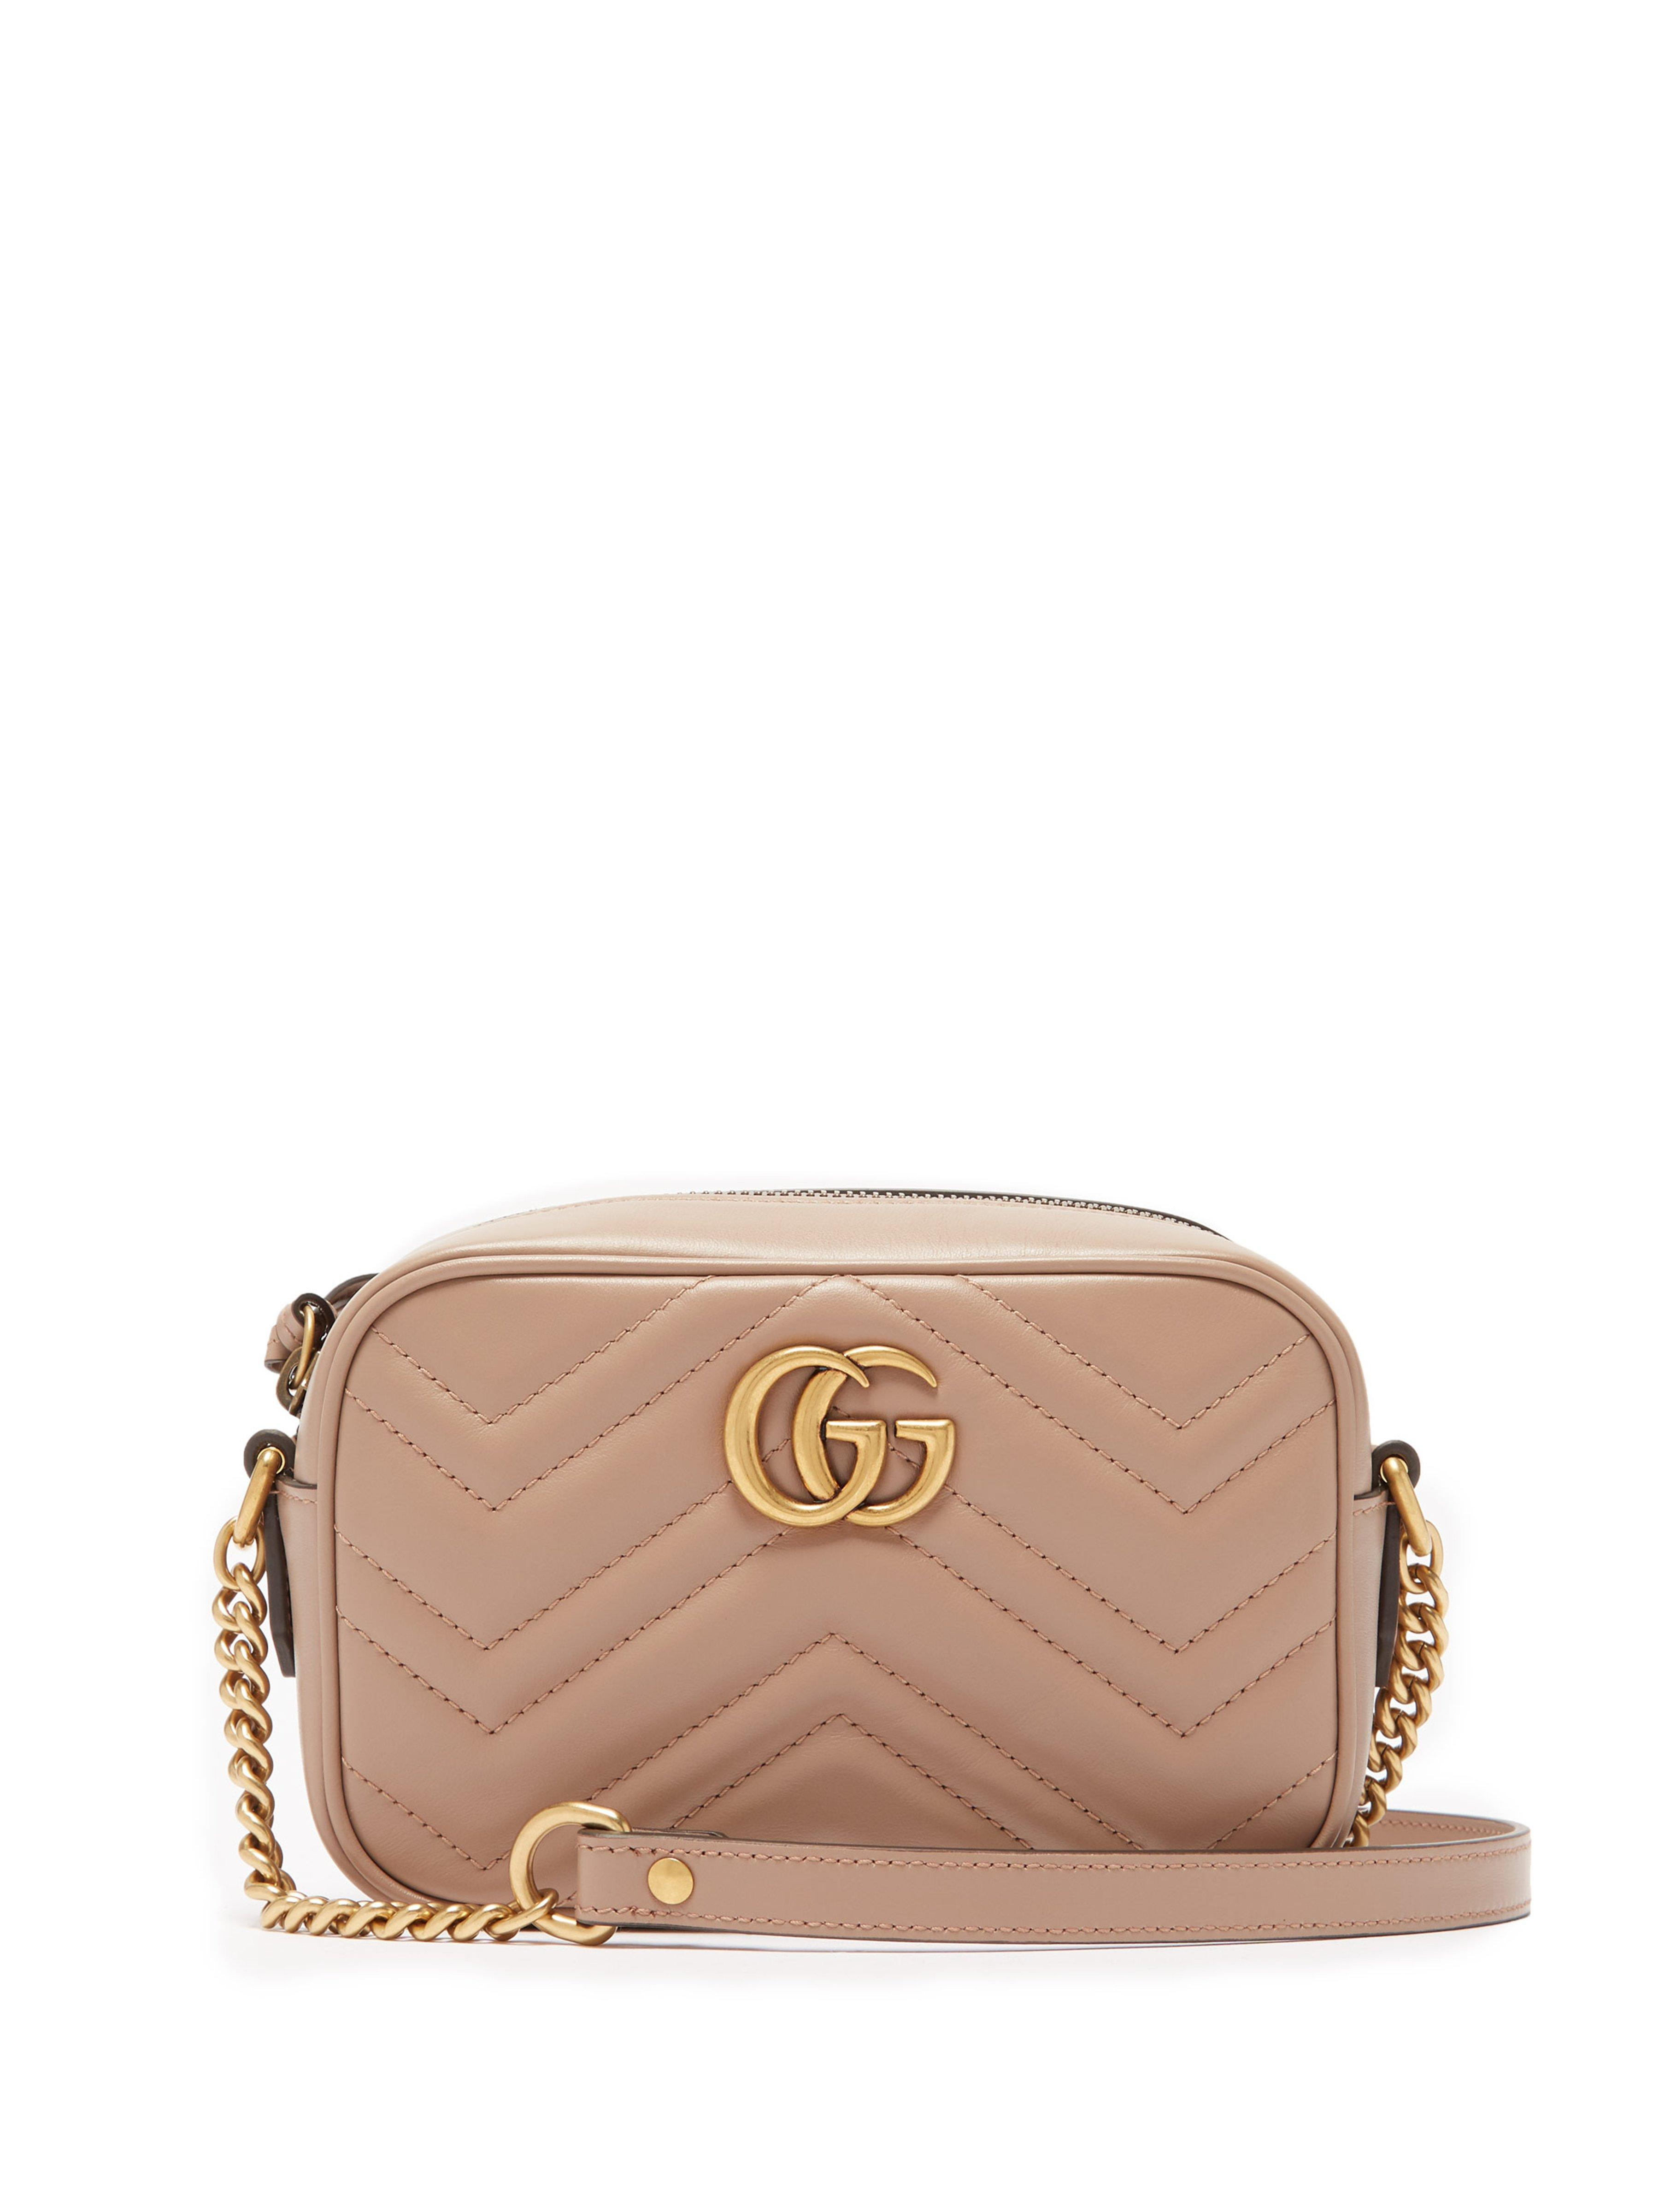 c28b2f7be5a Gucci Gg Marmont Mini Quilted Leather Cross Body Bag in Natural - Lyst